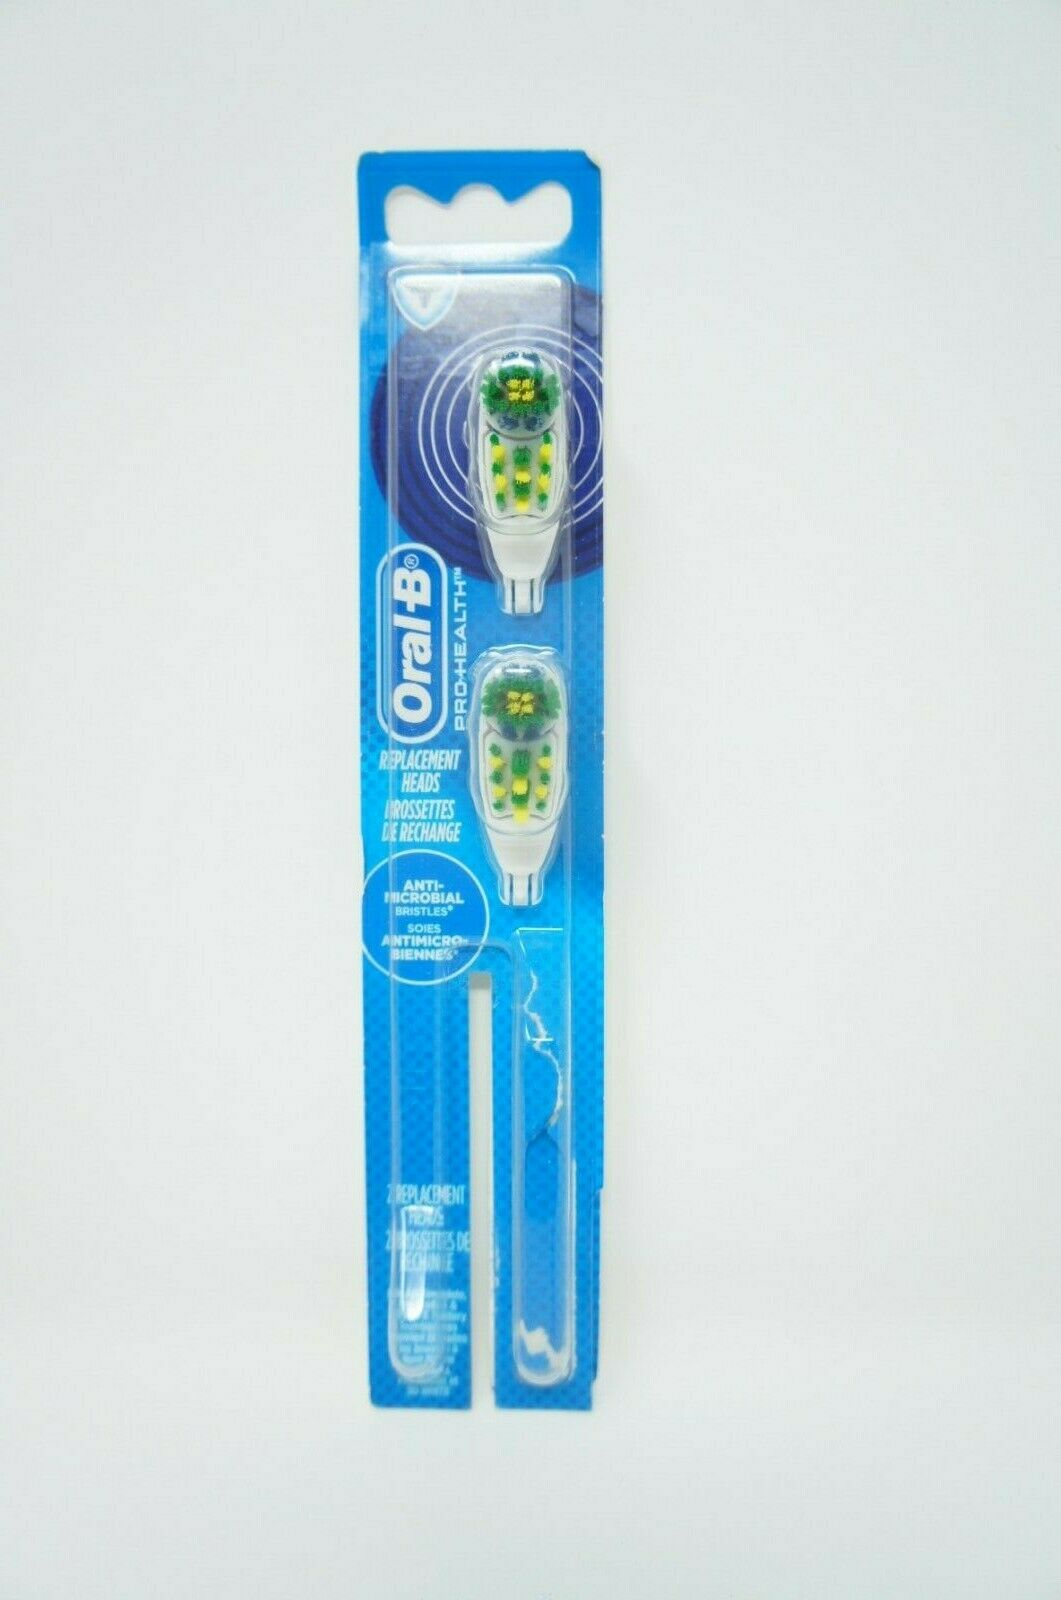 Oral-B Complete Action Anti-Microbial Electric Toothbrush Brush Head Refill